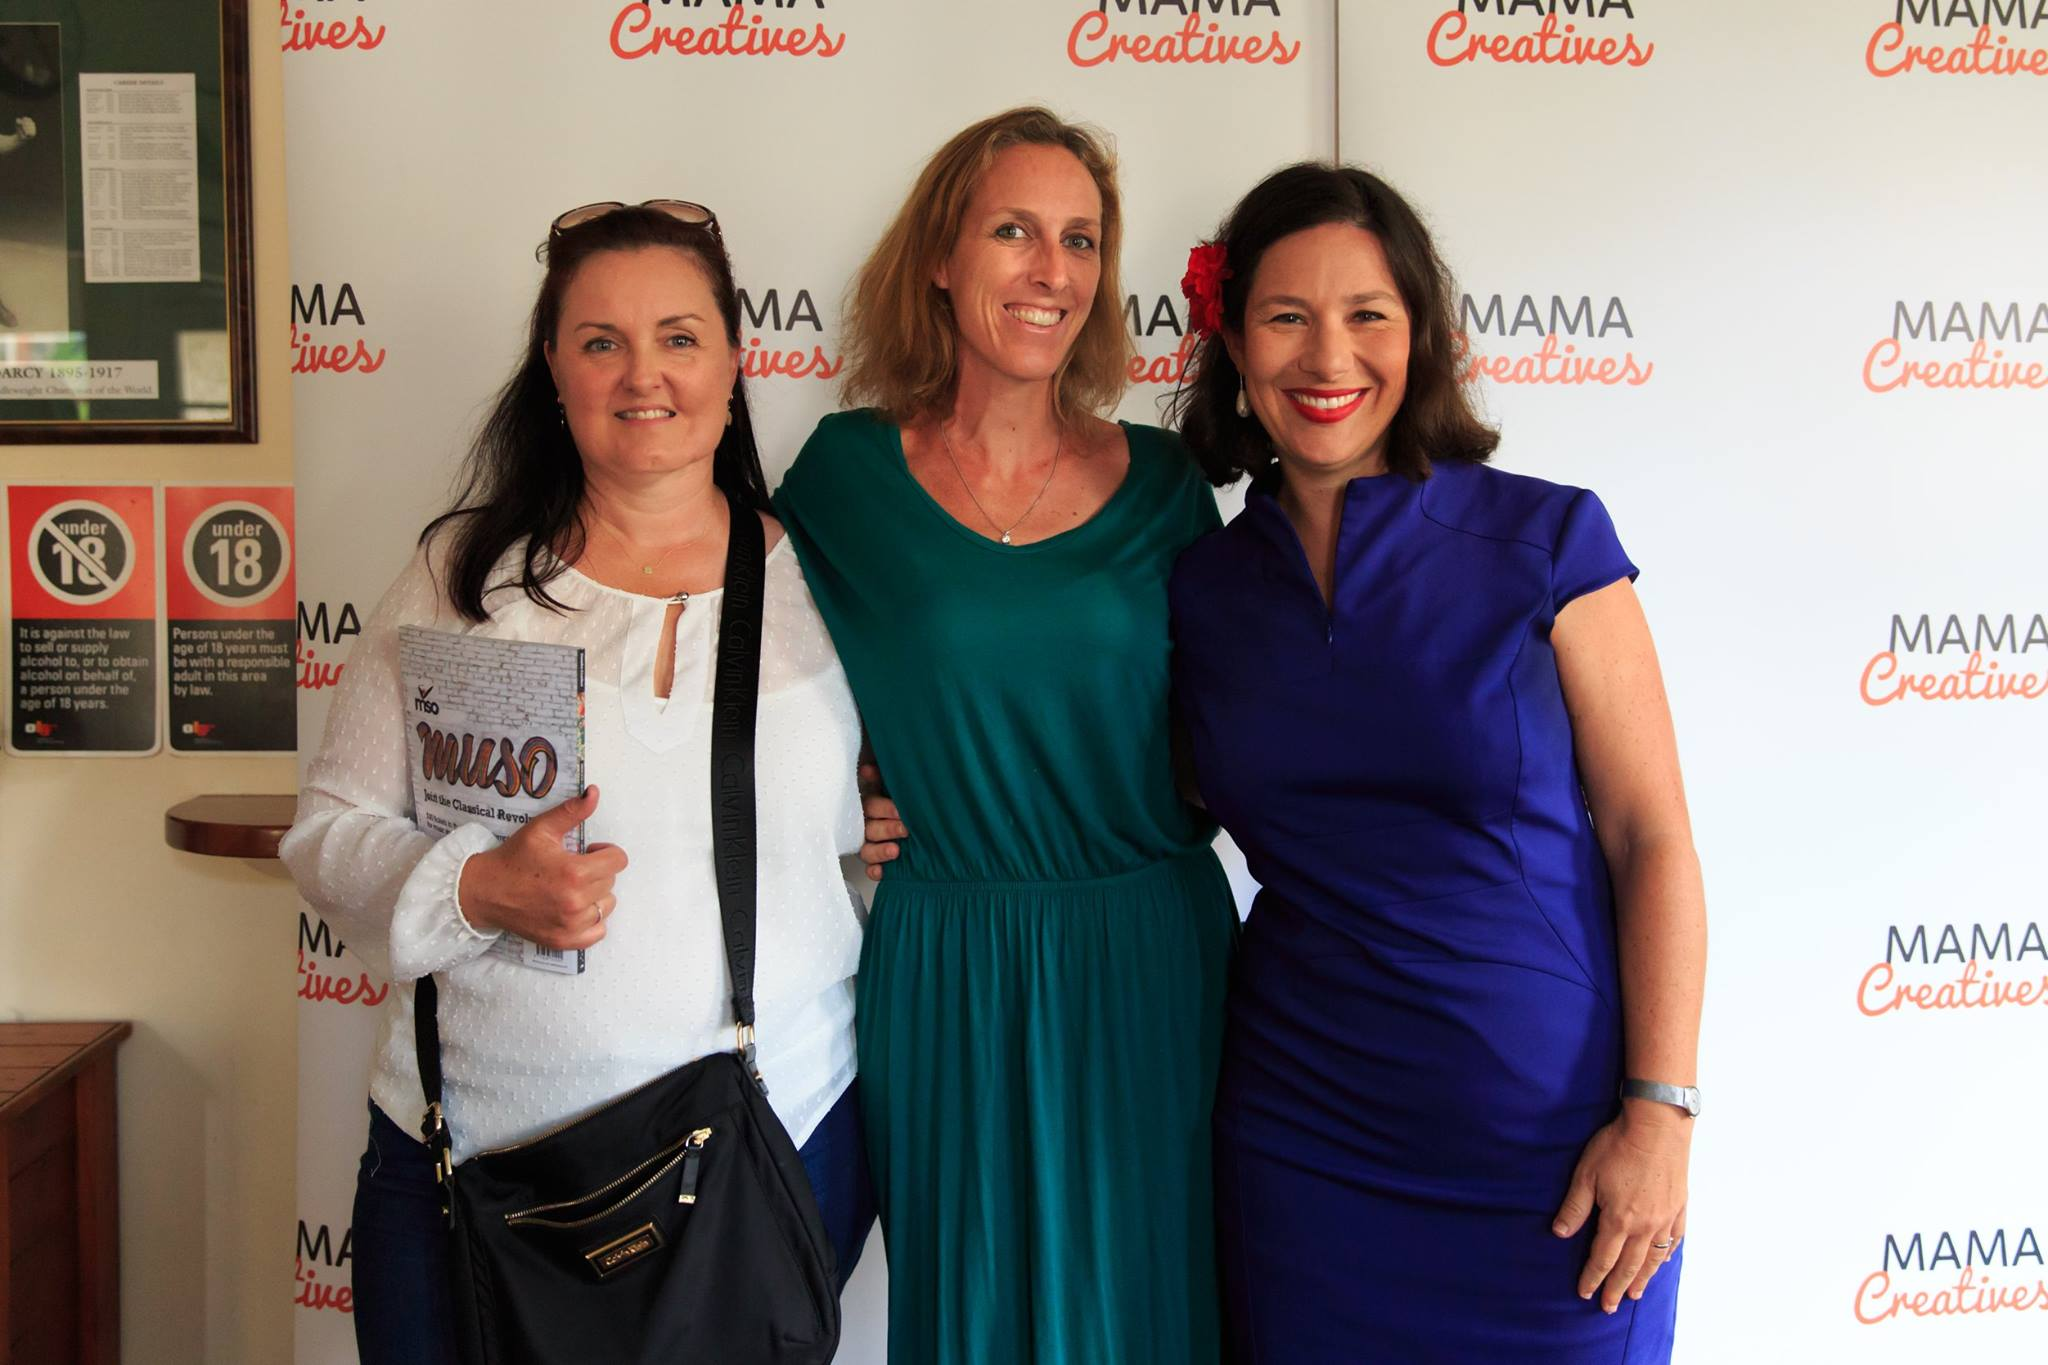 Courageous speaker Bianca Havas, with friends, who shared her amazingly courageous story, at our Mama Creatives Story Slam.